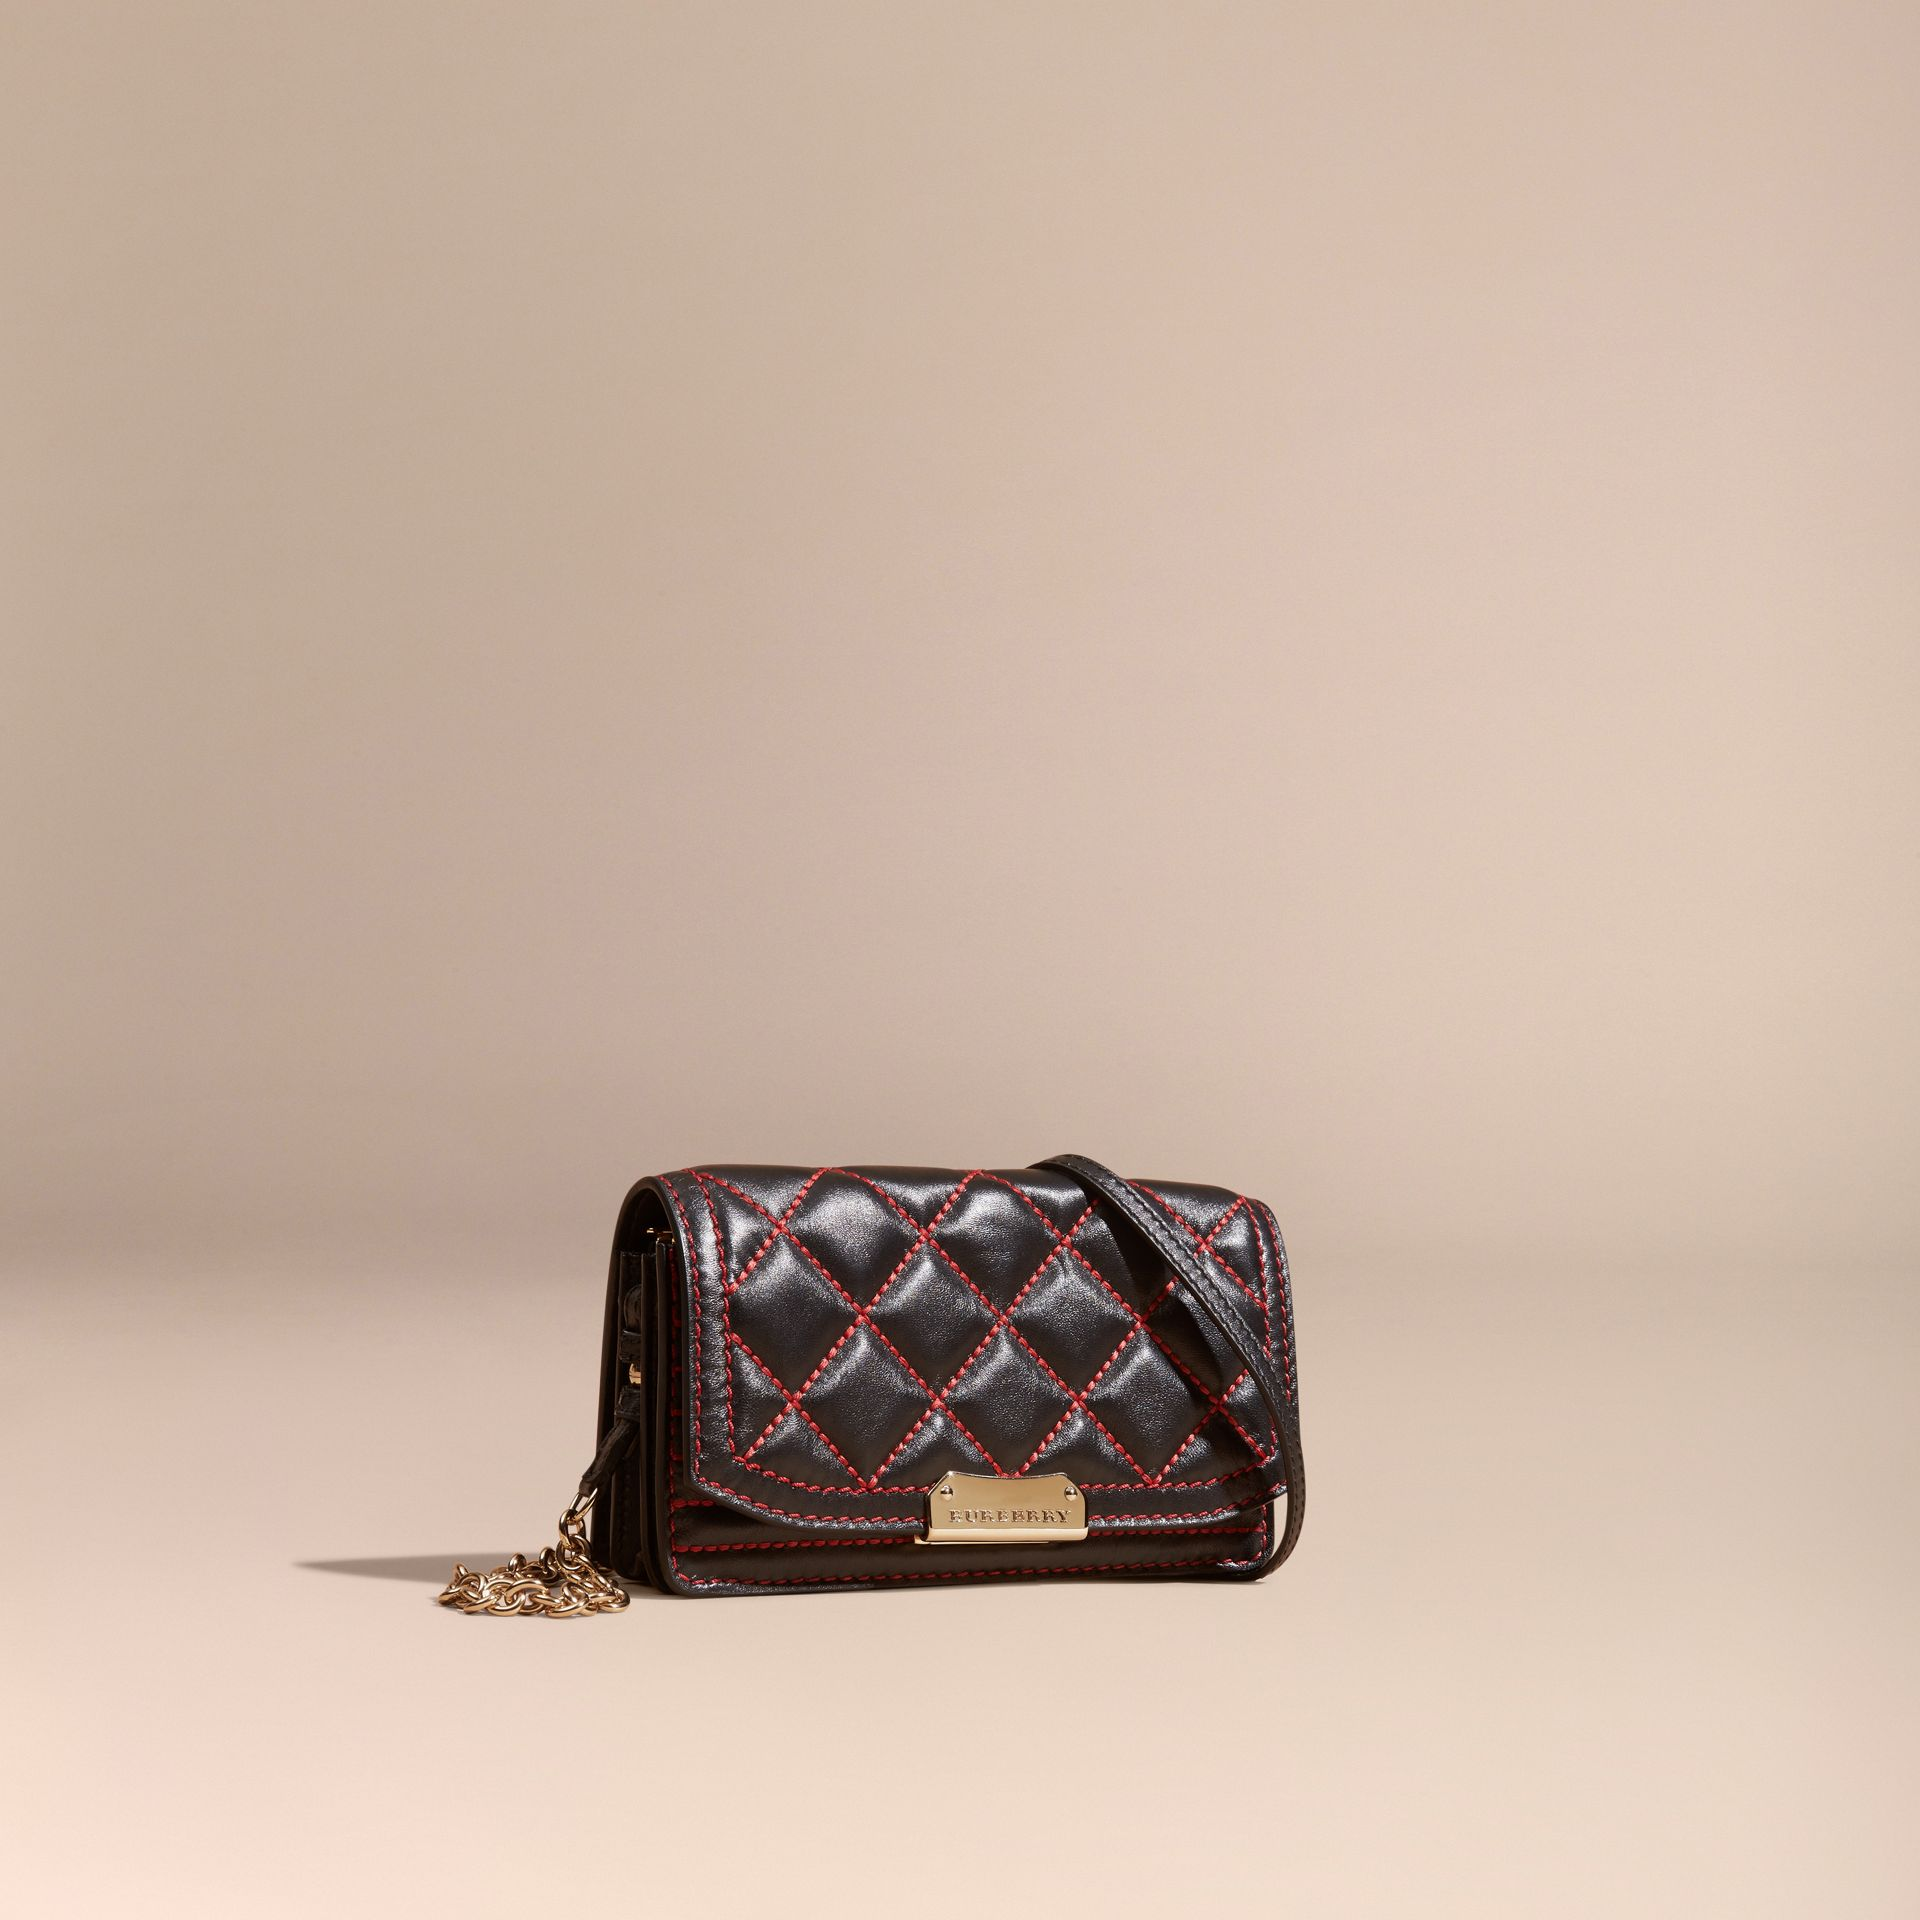 Black/ parade red Quilted Leather Clutch Bag with Chain - gallery image 1